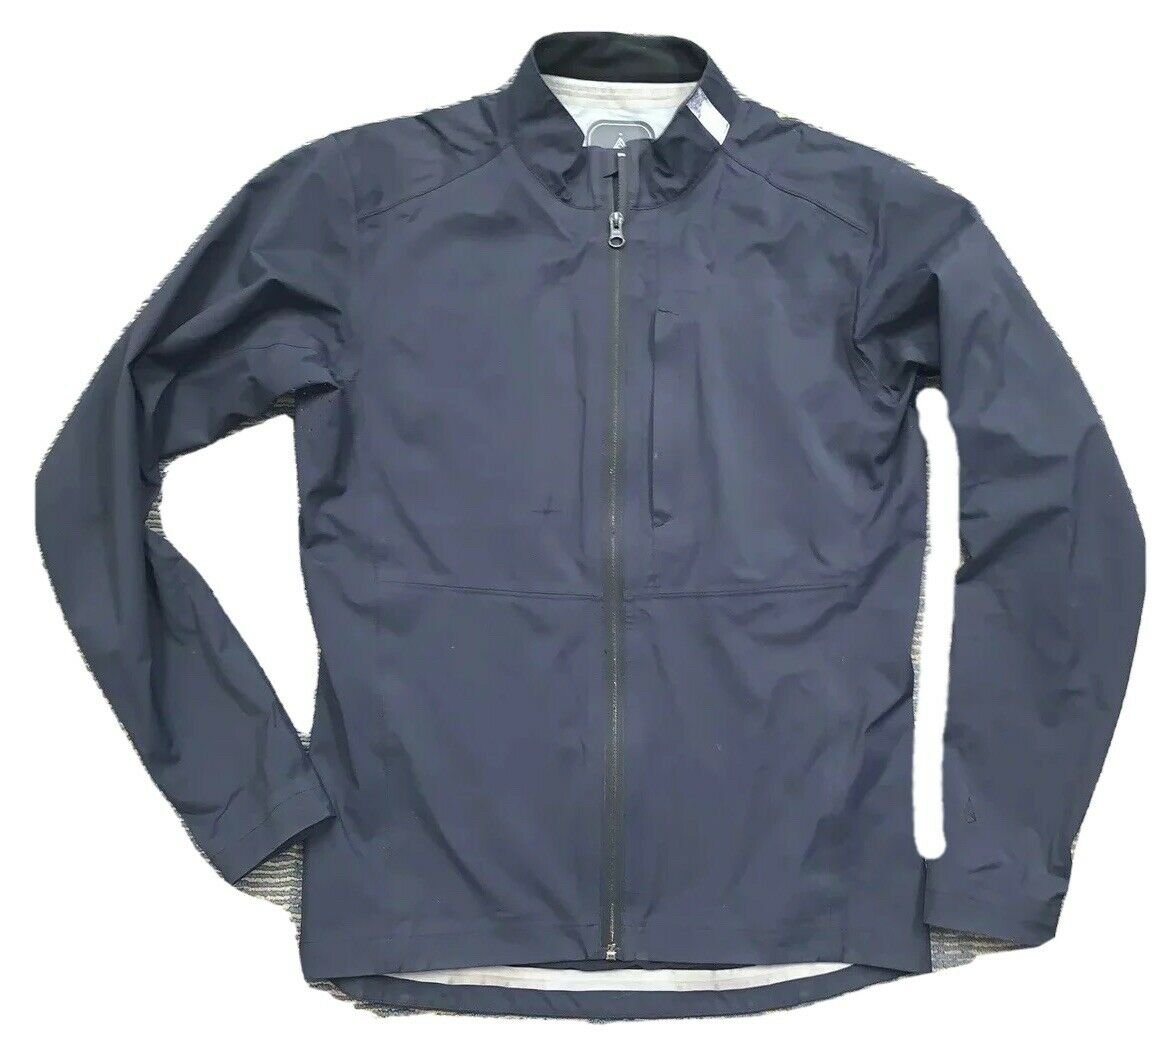 Mission Workshop ACRE Meridian Ultralight Cycling Jacket - Blau Small